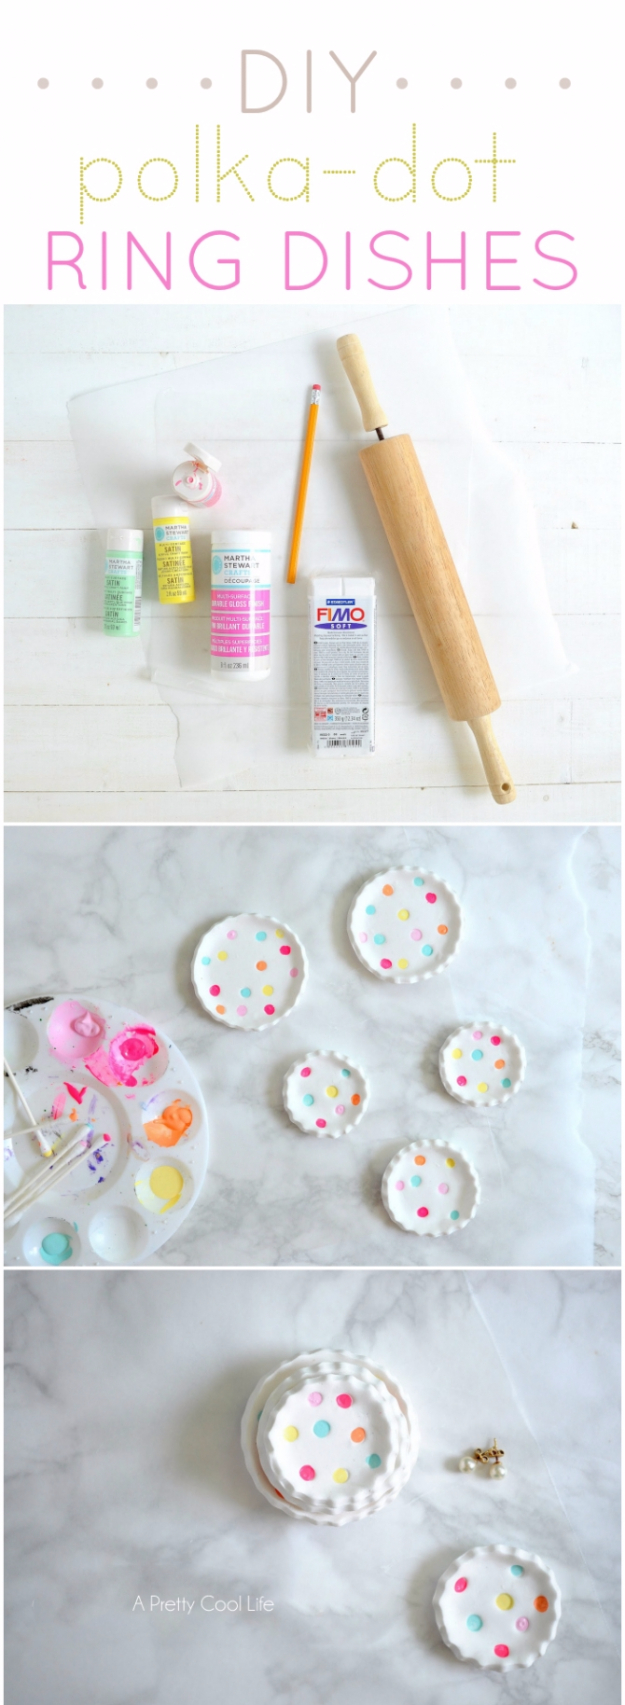 Cheap Crafts To Make and Sell - Polka Dot Ring Dishes - Inexpensive Ideas for DIY Craft Projects You Can Make and Sell On Etsy, at Craft Fairs, Online and in Stores. Quick and Cheap DIY Ideas that Adults and Even Teens Can Make on A Budget #diy #crafts #craftstosell #cheapcrafts